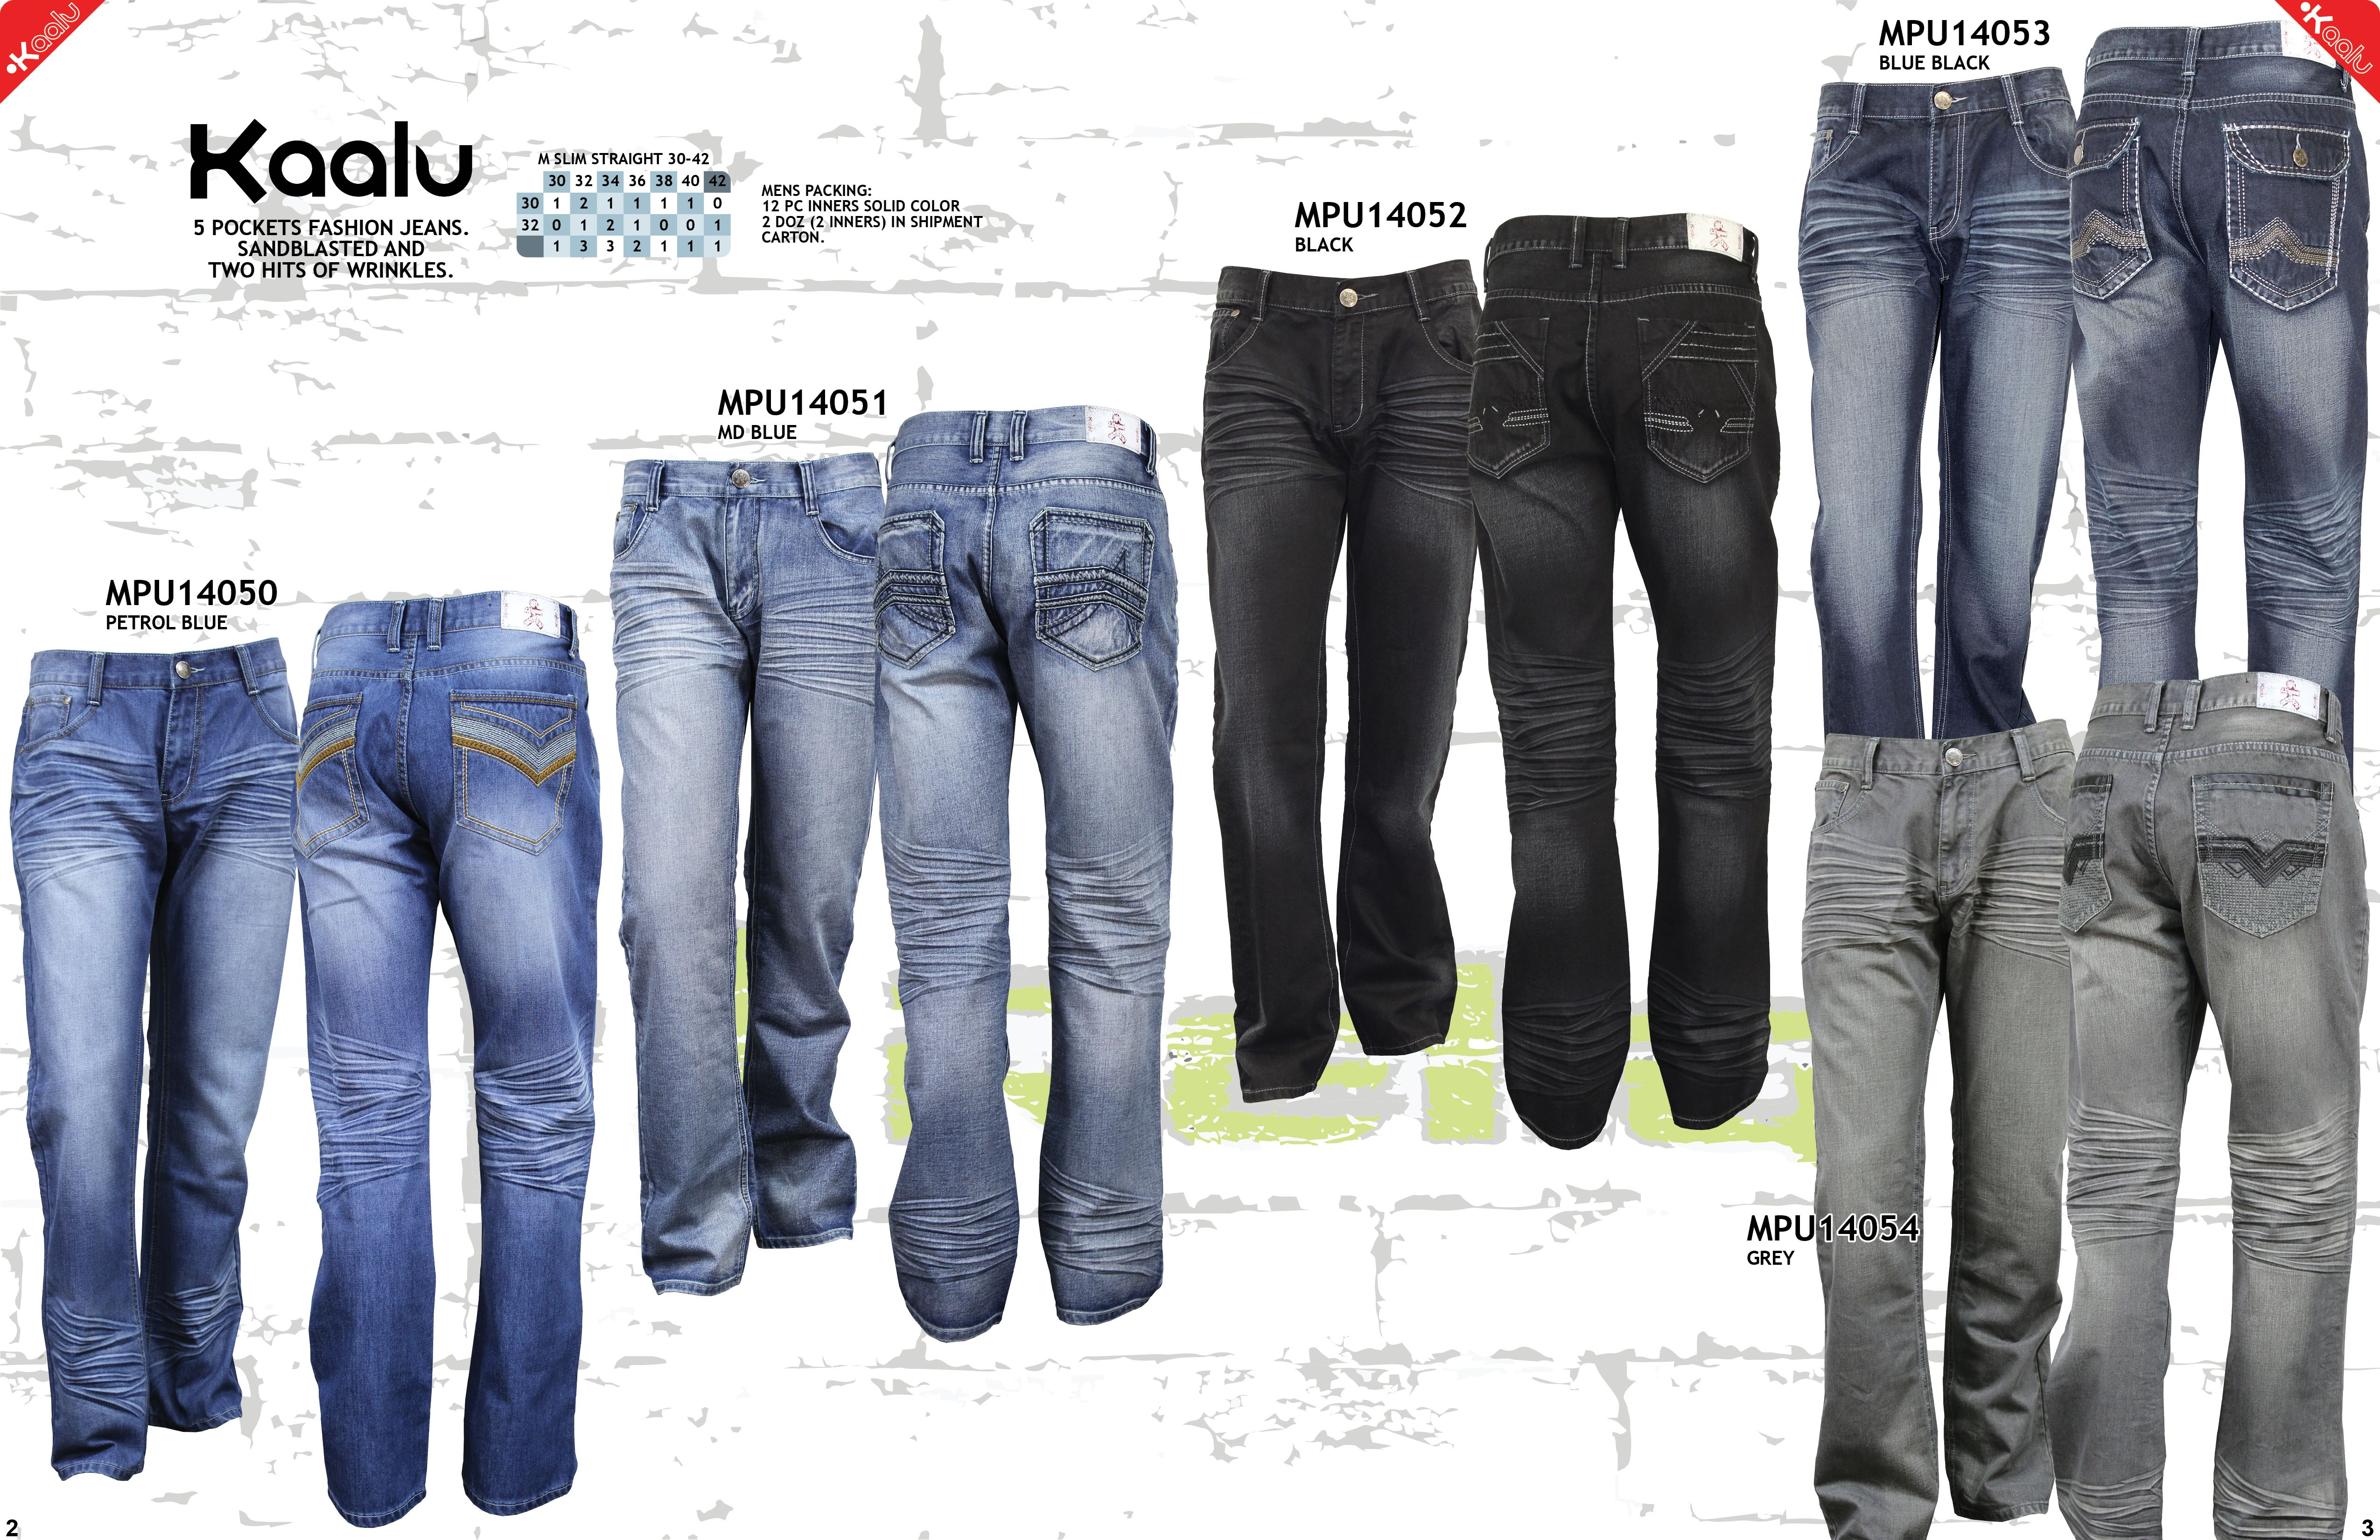 1419763f53e Our 5 pockets fashion jeans available now. For purchase call (305) 754-0408